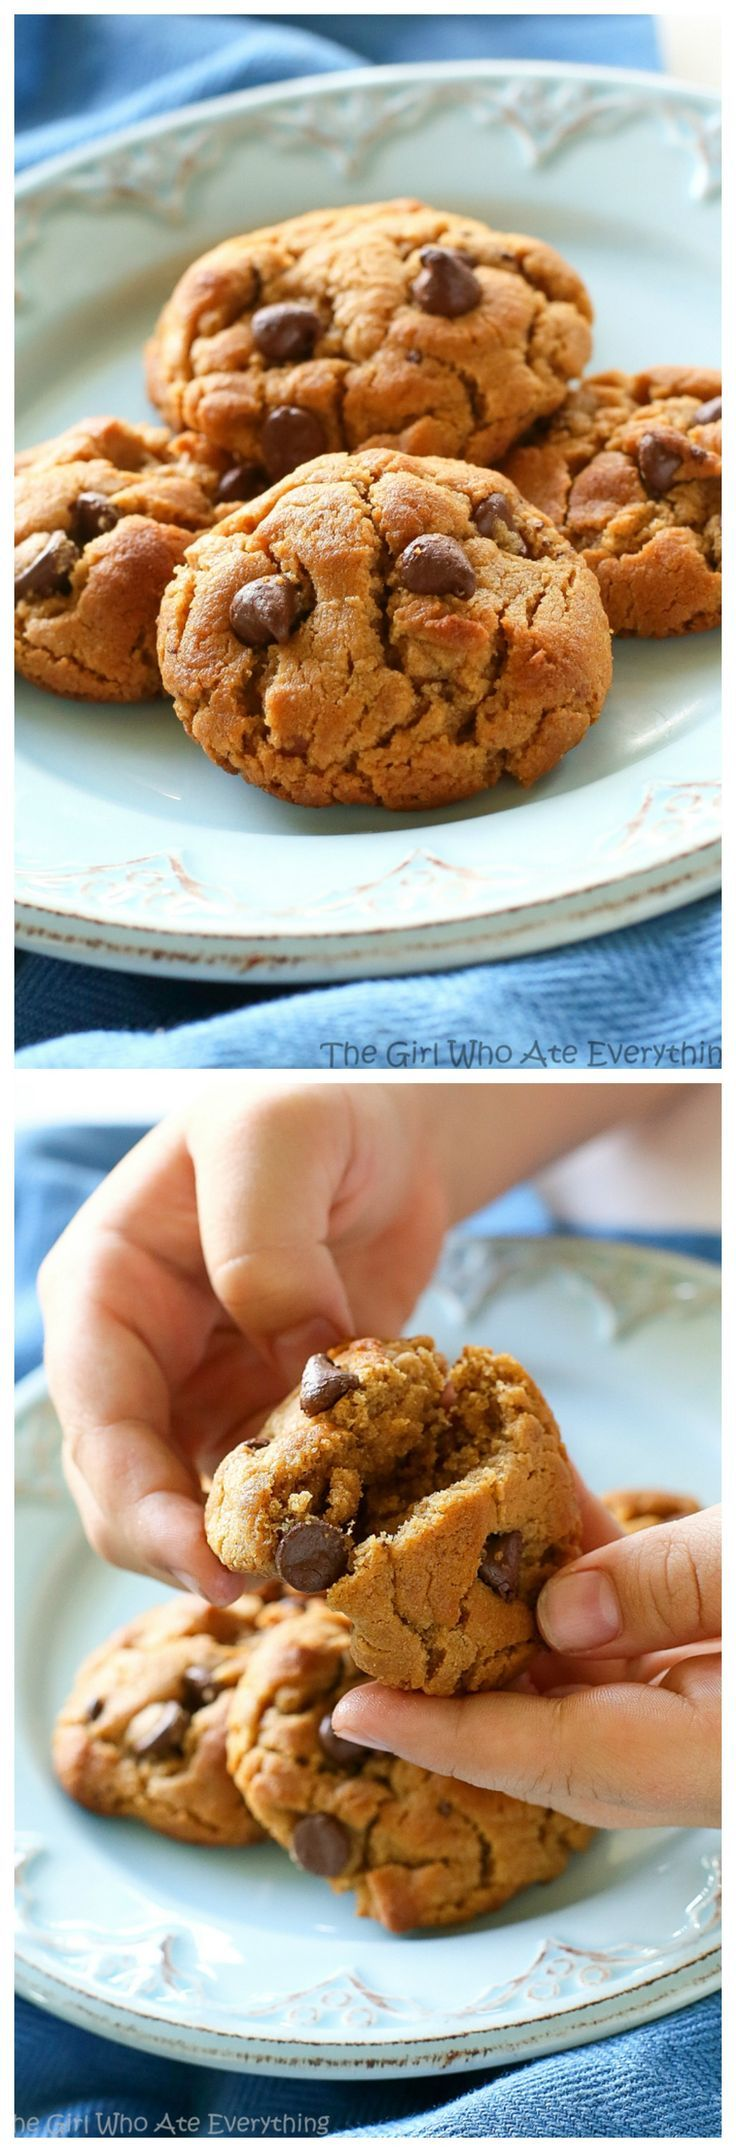 Flourless Peanut Butter Chocolate Chip Cookies - only a few ingredients and gluten free! the-girl-who-ate-everything.com